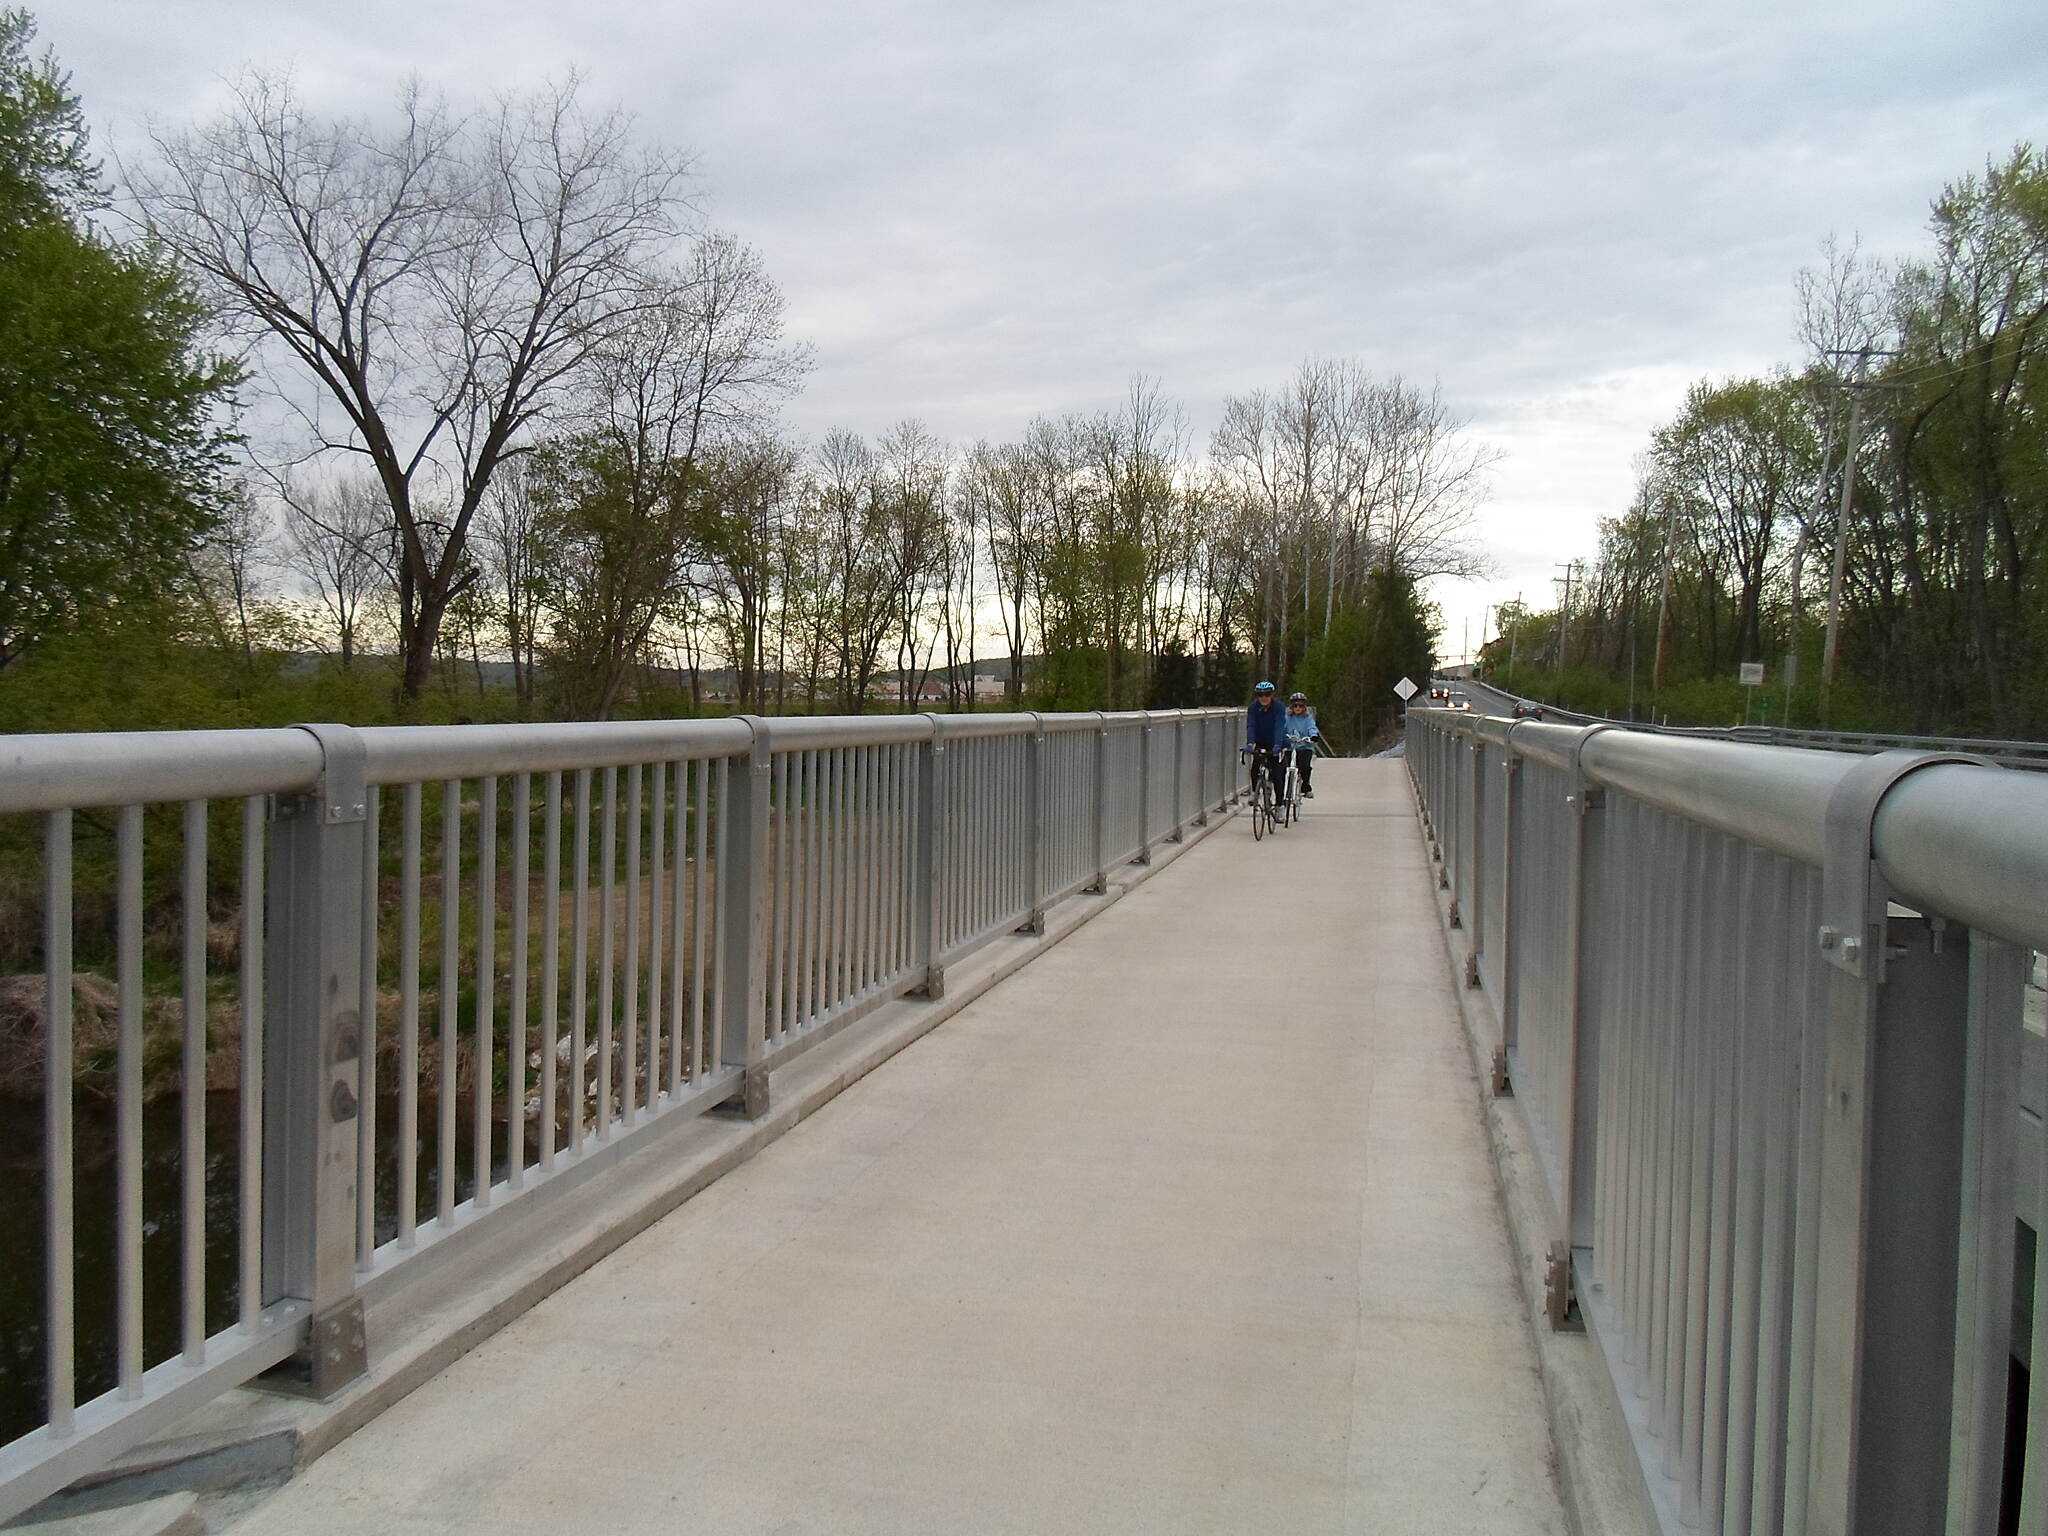 Heritage Rail Trail County Park Heritage Rail Trail Park The bridge carrying the Northern Extension of the trail over the Codorus Creek east of Christ Field is finally complete! Taken April 2015.